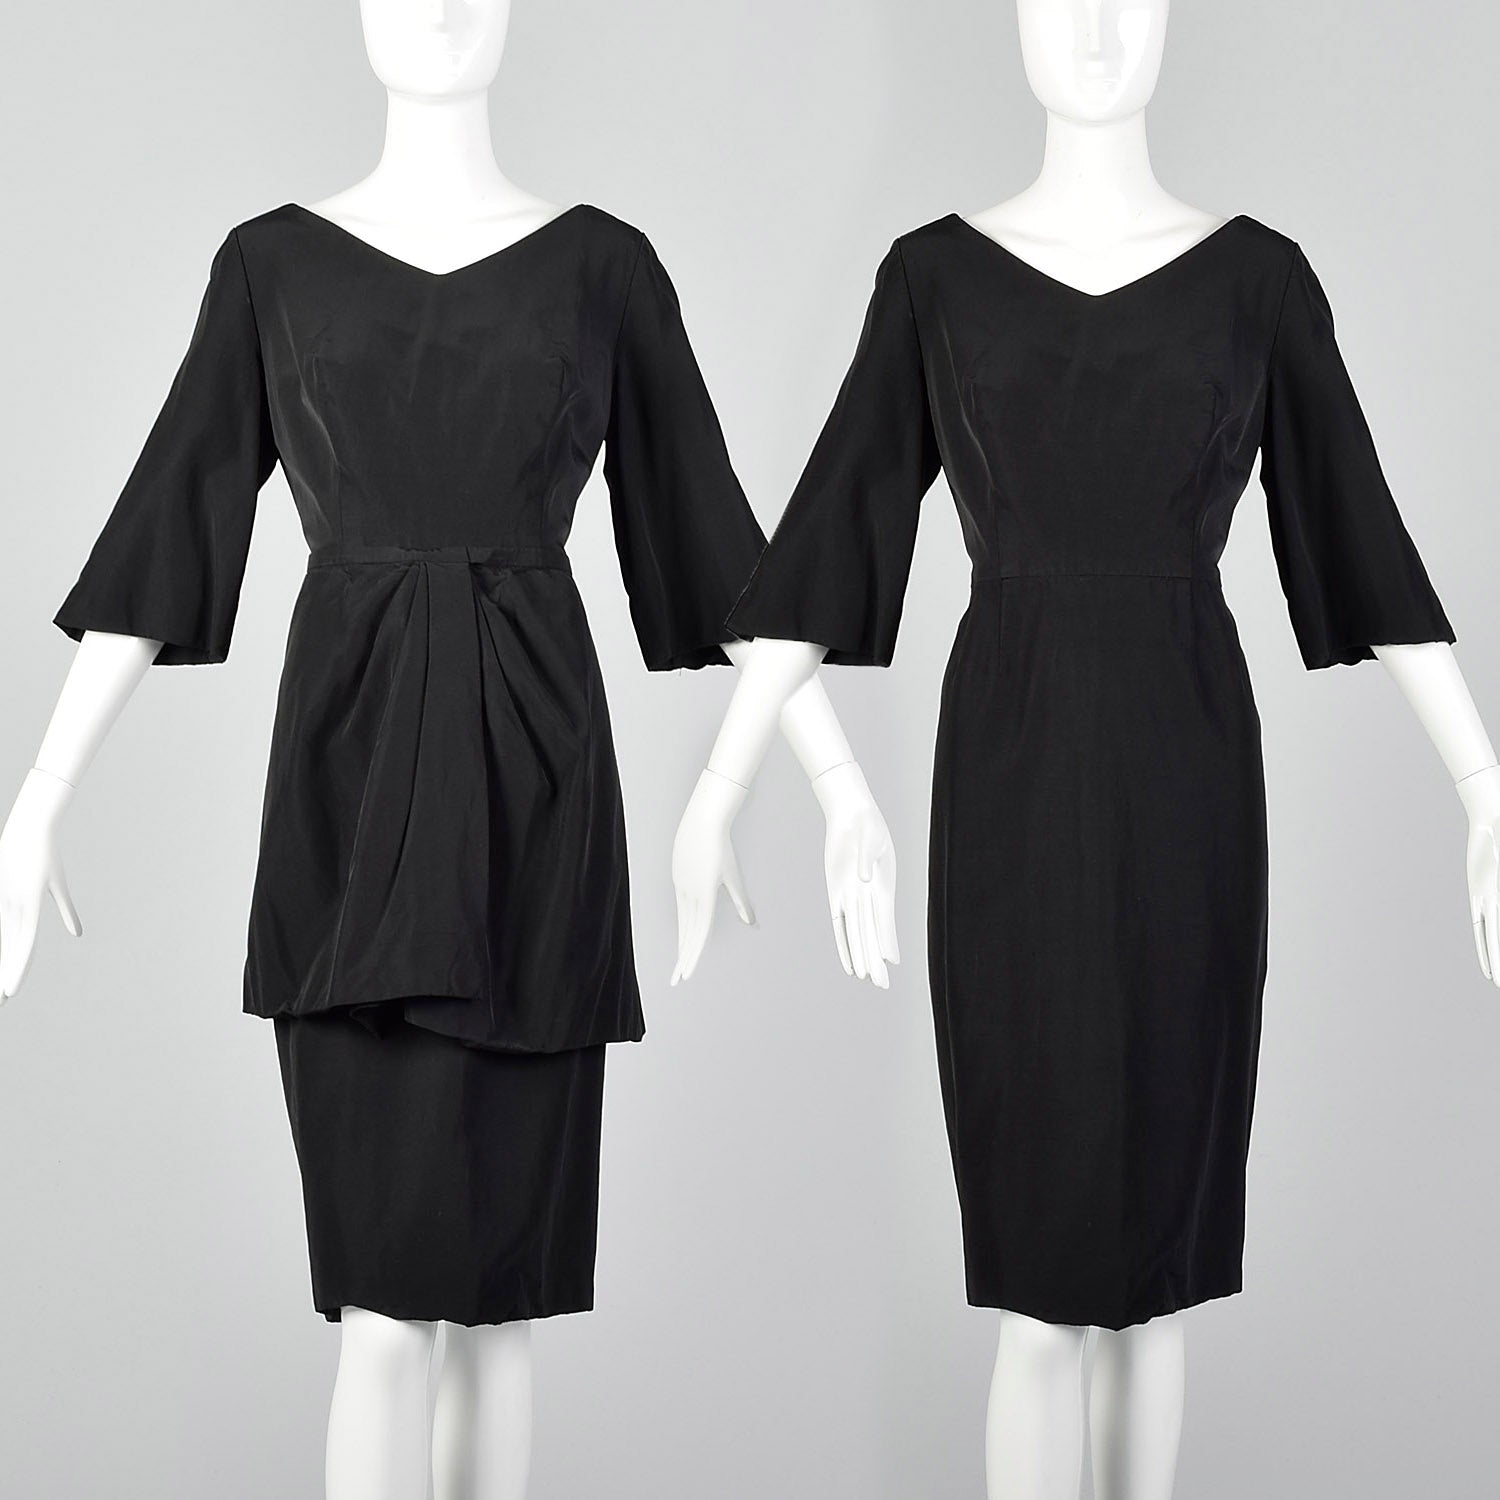 Large 1950s Black Dress and Overskirt